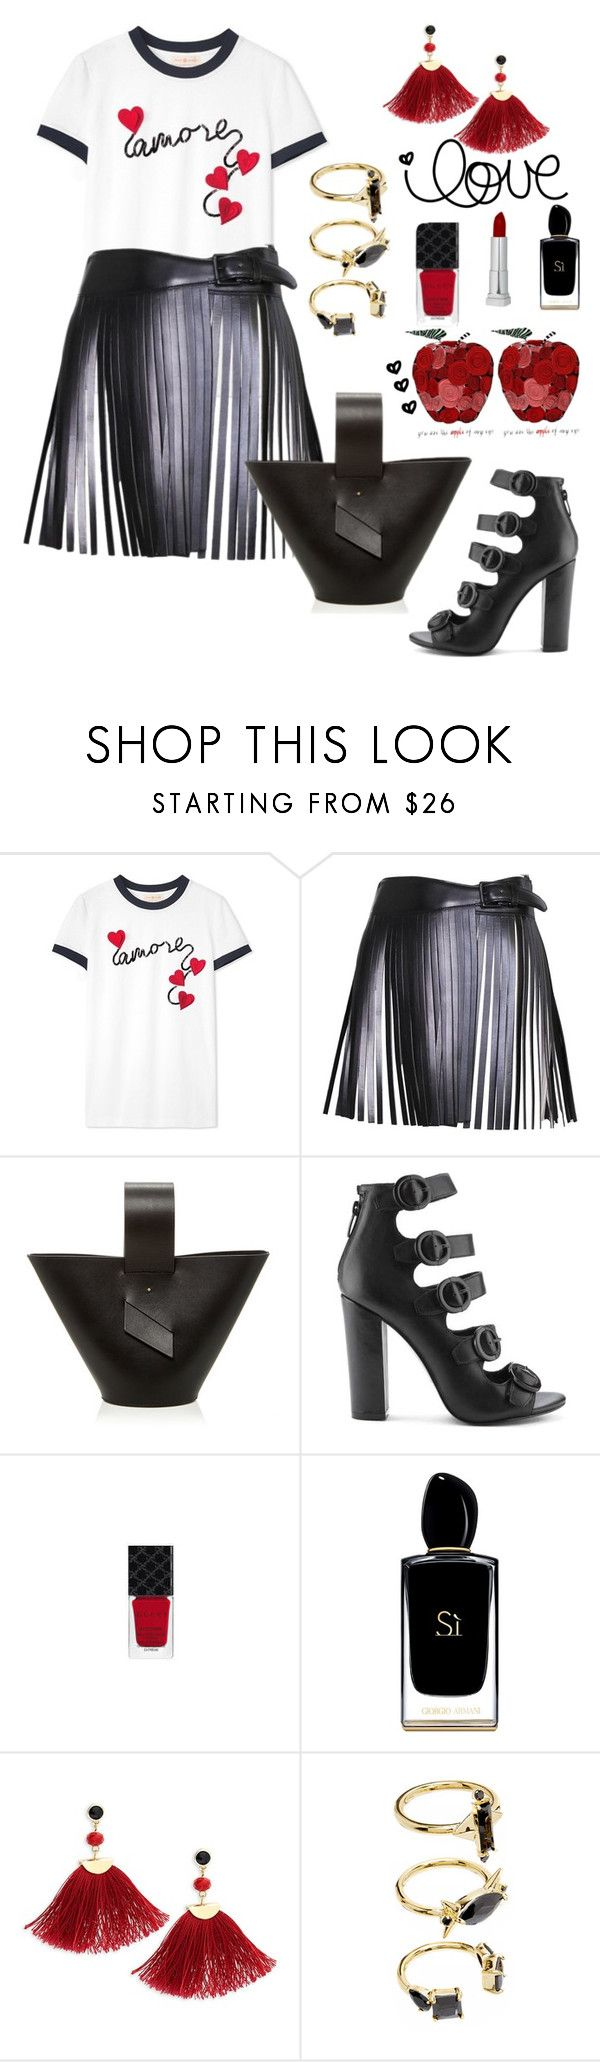 """""""Lovely all day outfit"""" by rousou ❤ liked on Polyvore featuring Tory Burch, Alaïa, Kendall + Kylie, Gucci, Giorgio Armani, Shashi and Noir Jewelry"""